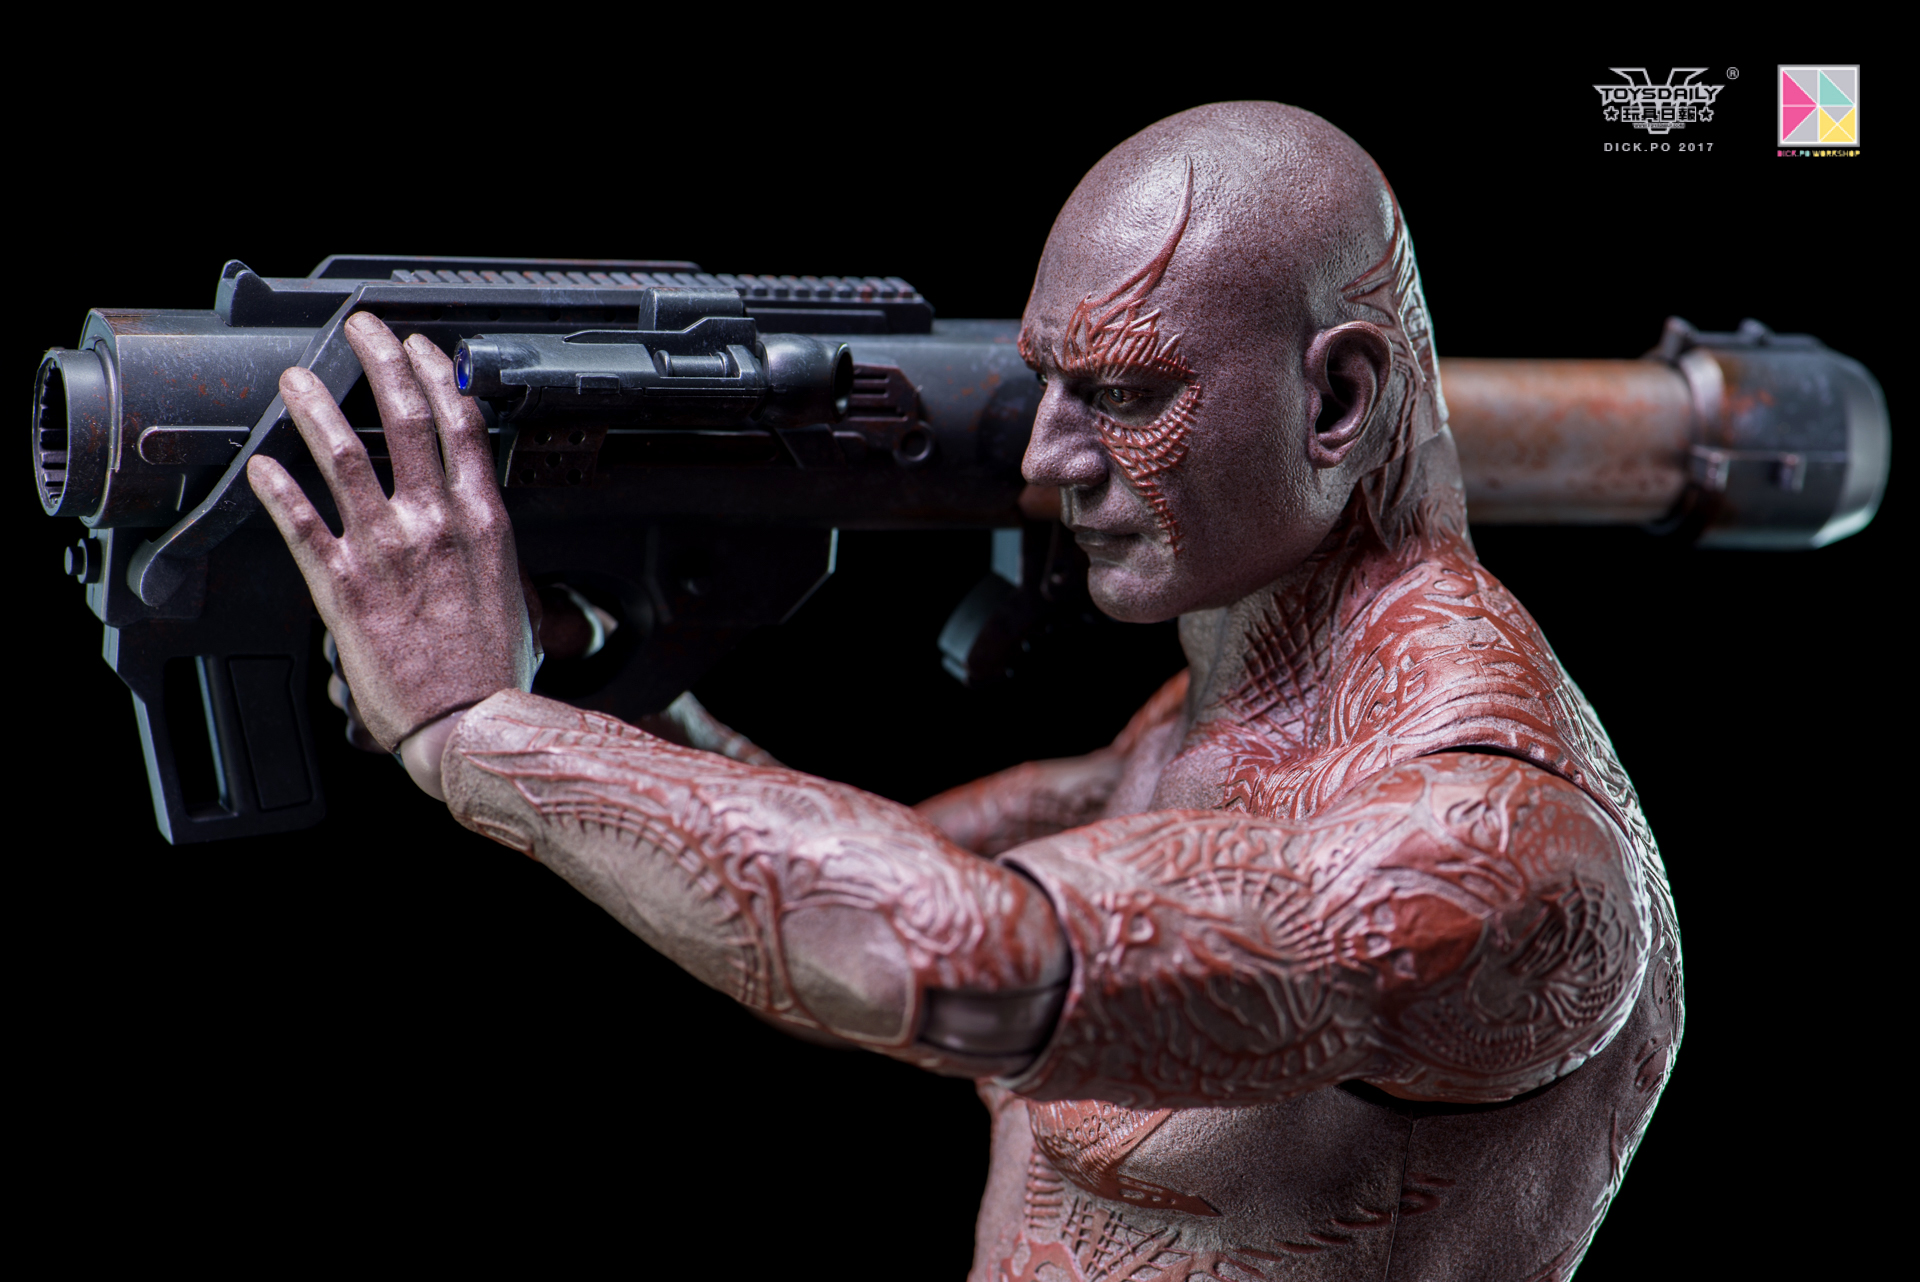 toysdaily_dick.po_Hottoys_DARX-48.jpg